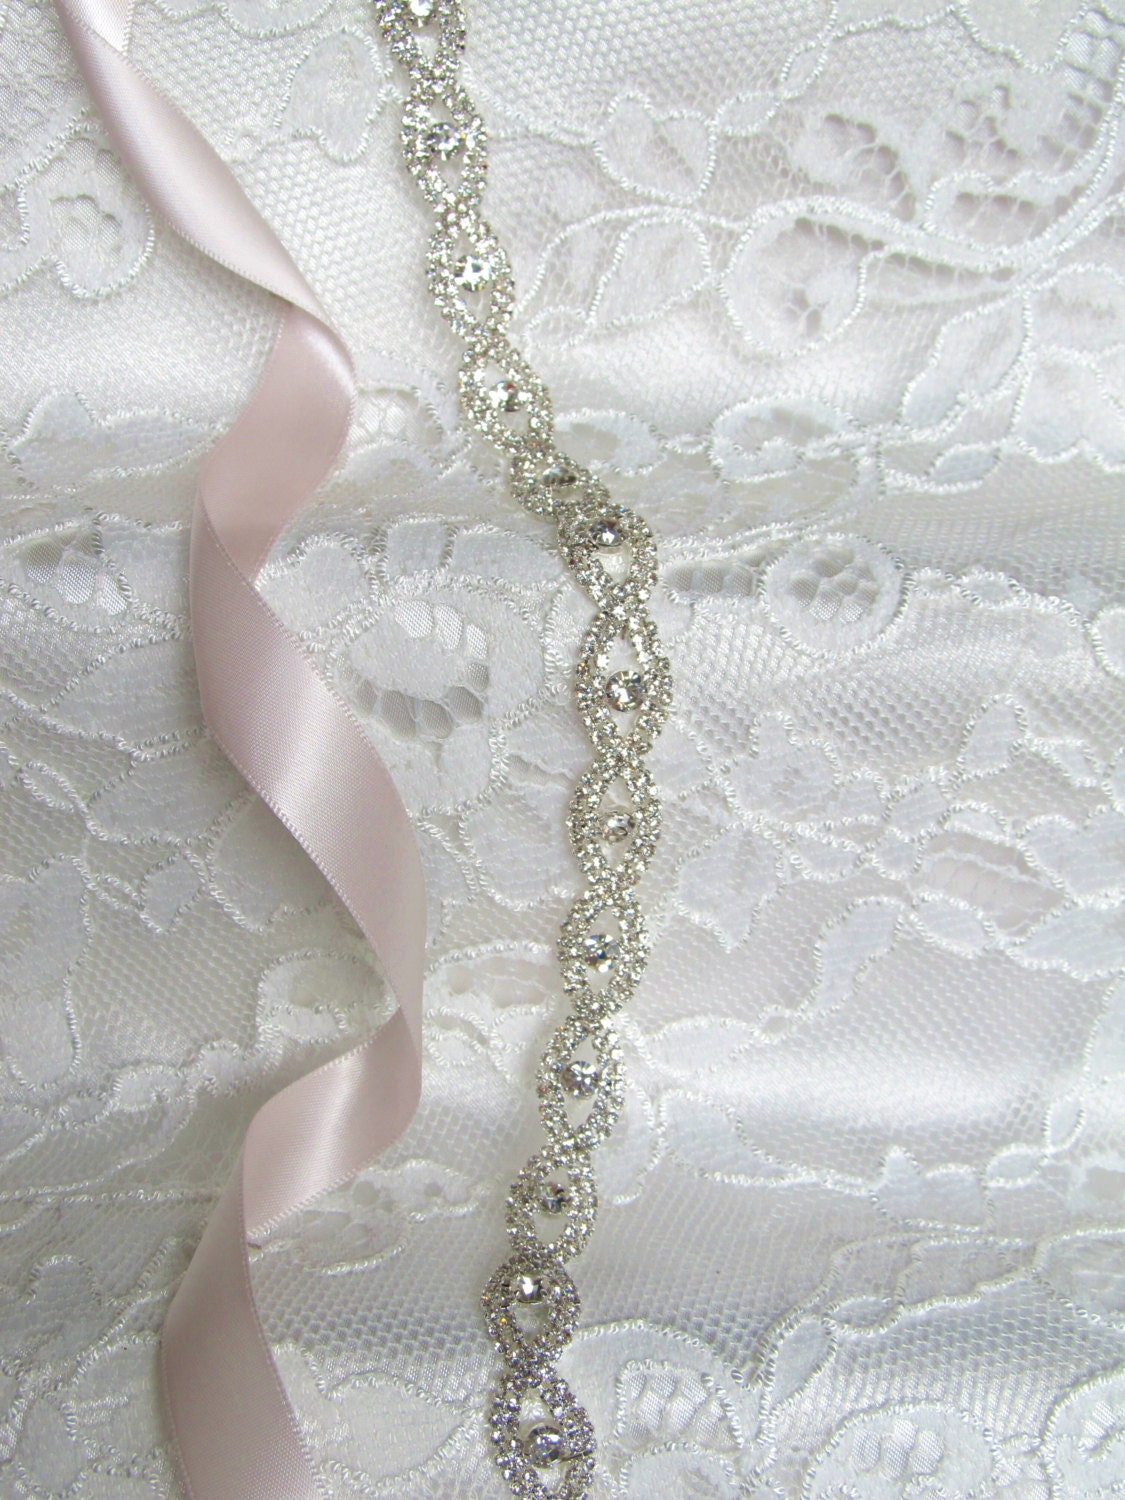 Silver Crystal Rhinestone Bridal Sash,Wedding sash,Belts And Sashes,Bridal Accessories,Bridal Belt and sashes,Ribbon Sash,Style #50